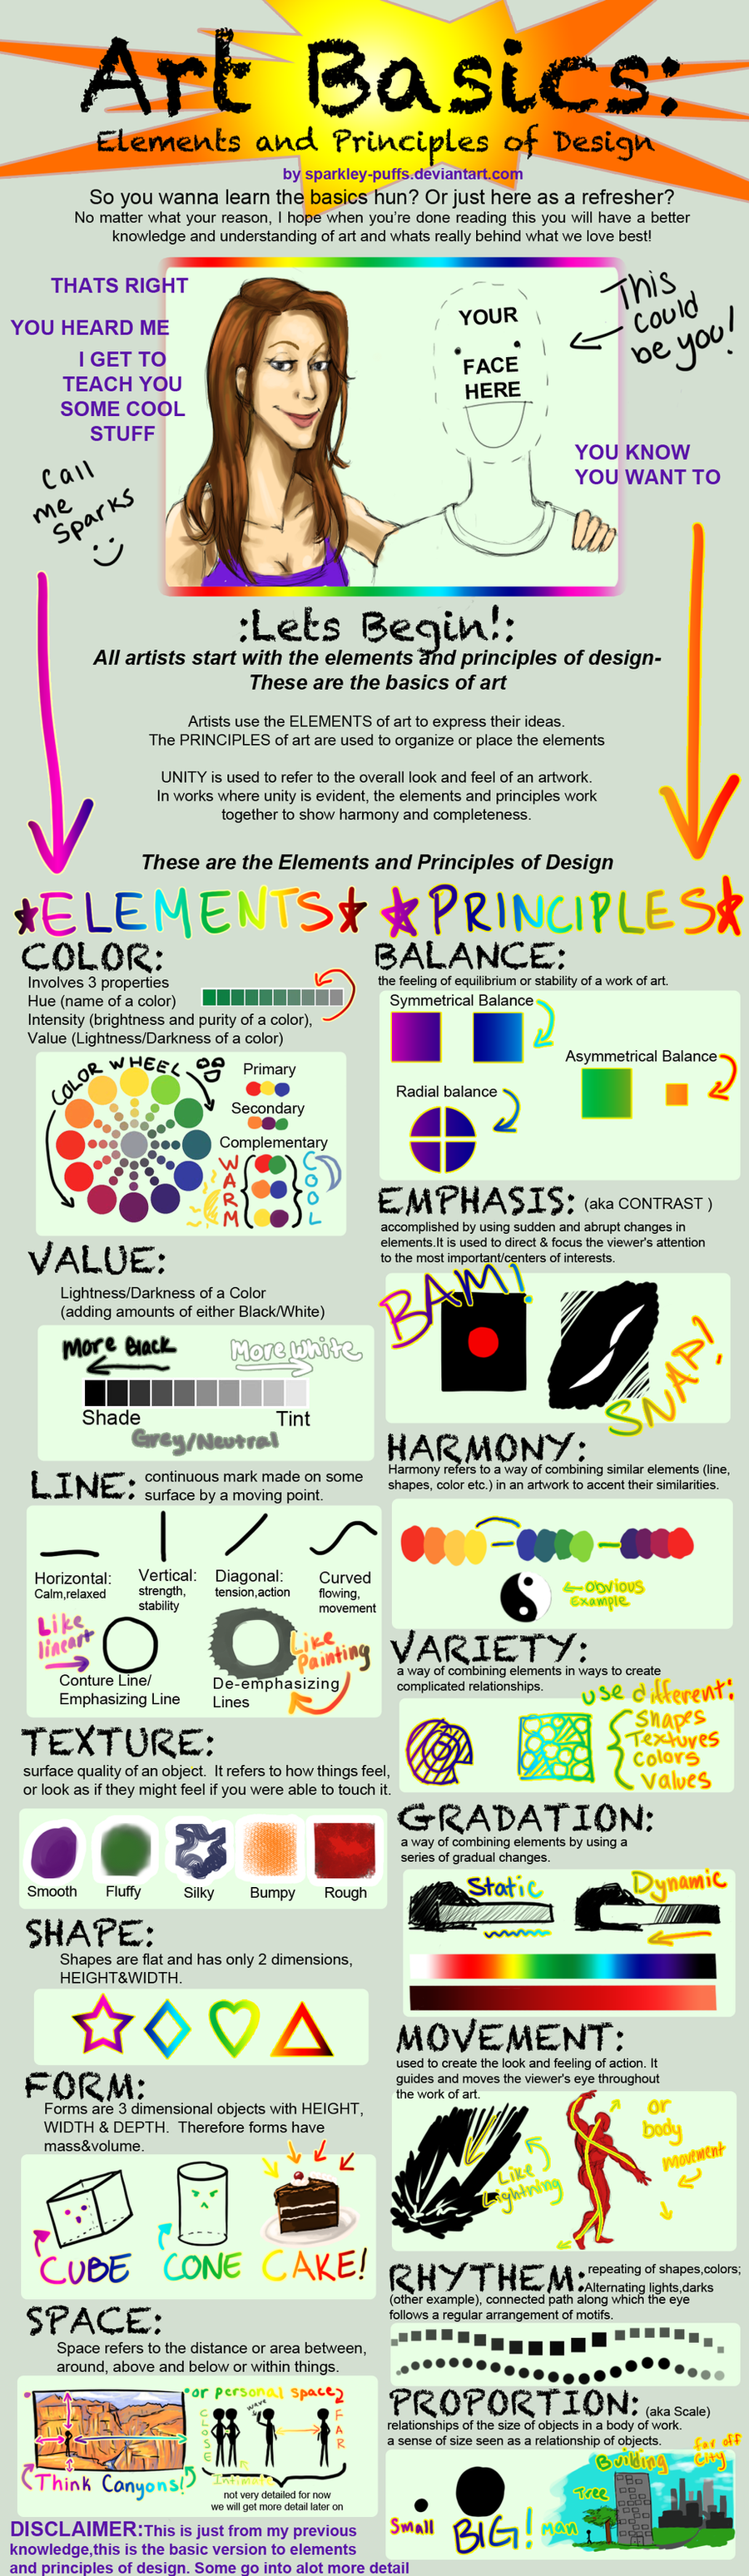 3 Elements Of Design : Elements principles of design by thecuddlykoalawhale on